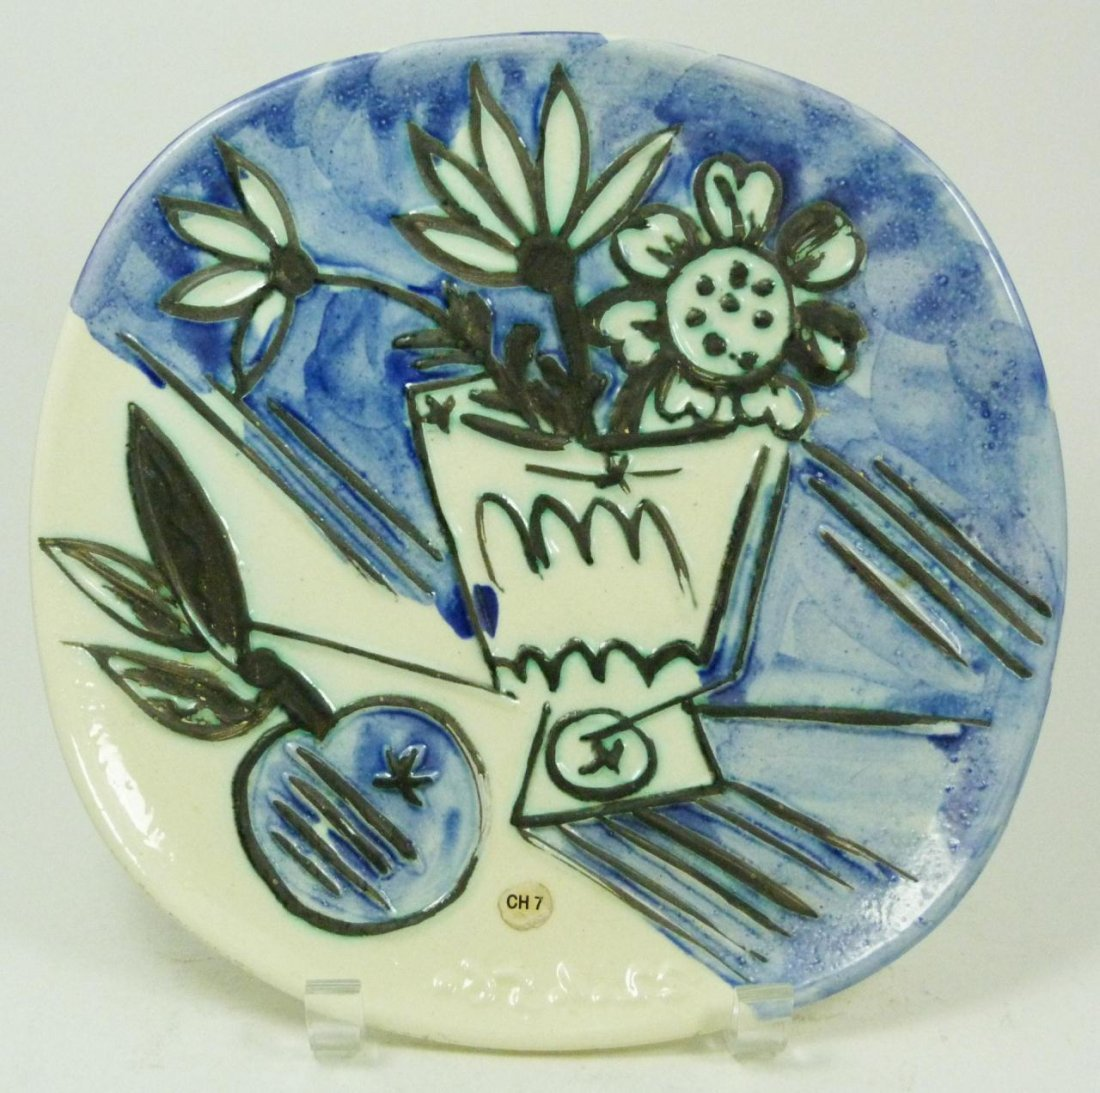 20: PICASSO ATELIER MADOURA FRENCH CERAMIC PLATE